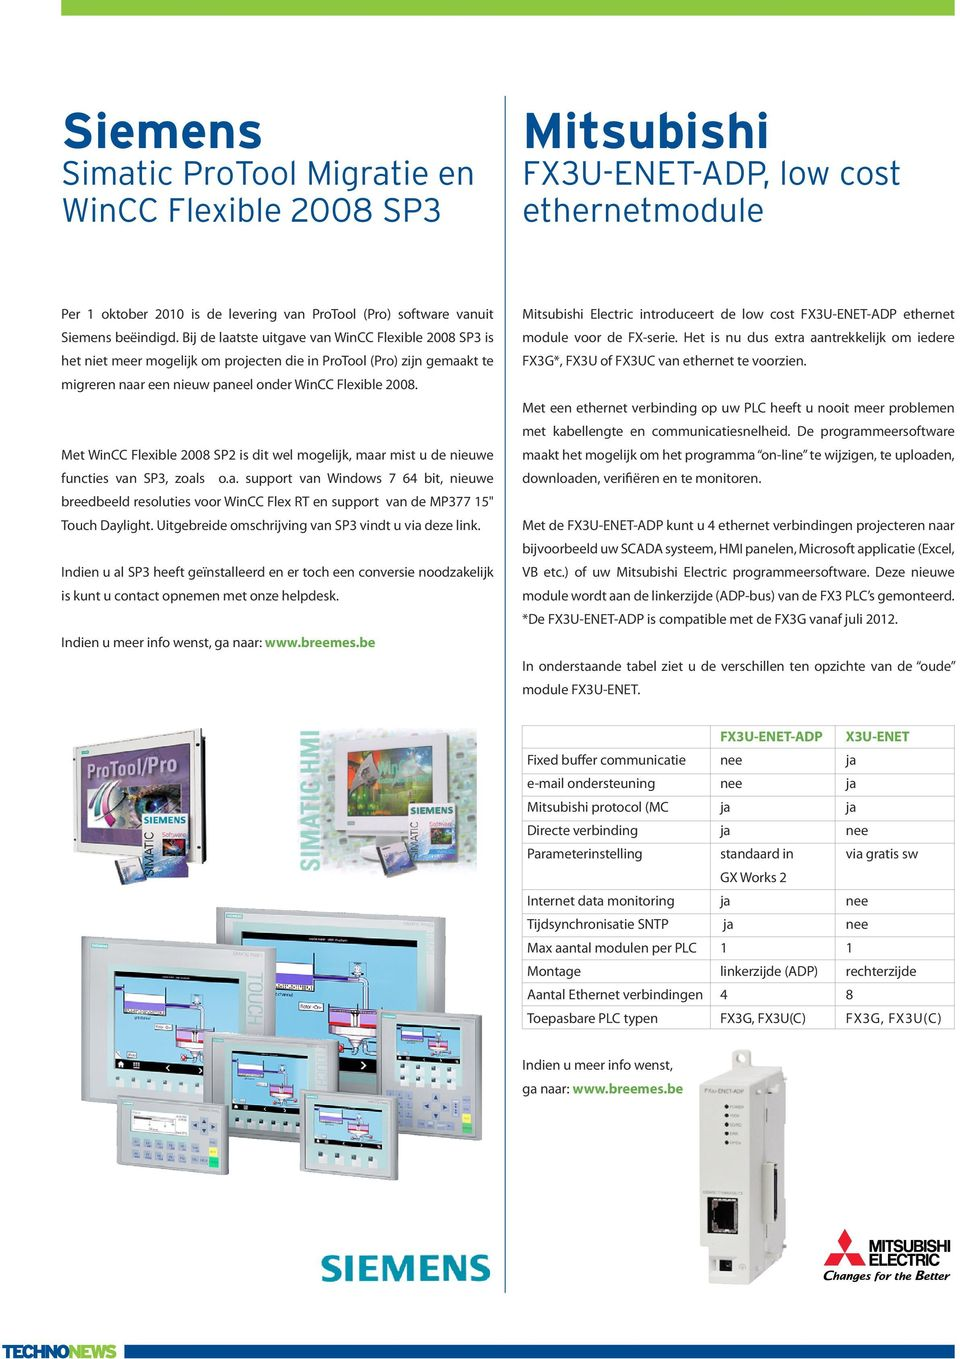 "Met WinCC Flexible 2008 SP2 is dit wel mogelijk, maar mist u de nieuwe functies van SP3, zoals o.a. support van Windows 7 64 bit, nieuwe breedbeeld resoluties voor WinCC Flex RT en support van de MP377 15"" Touch Daylight."